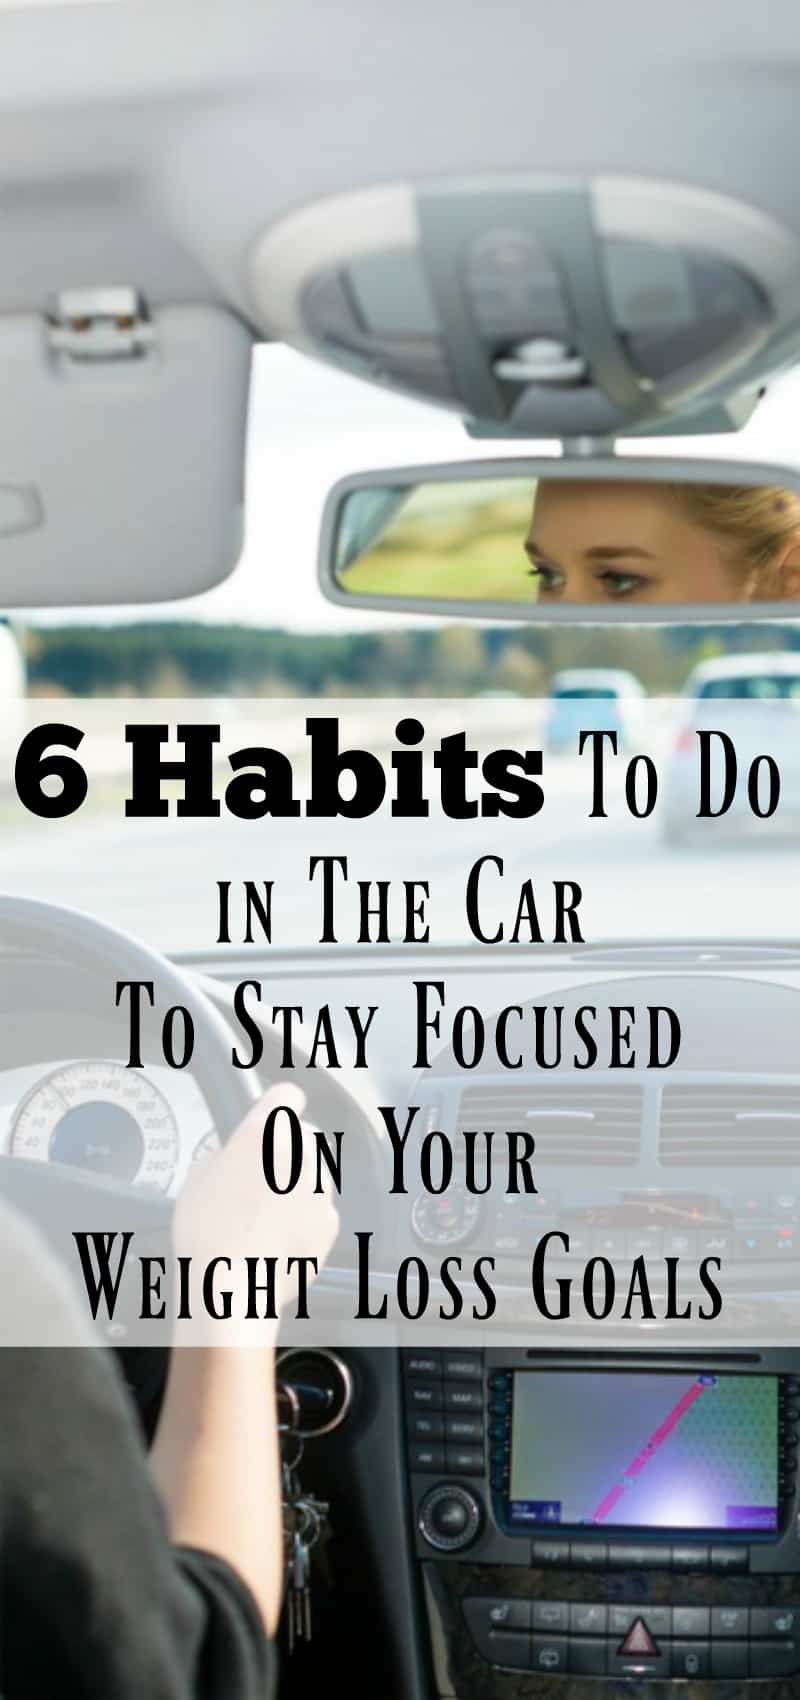 6 Habits to do in the car to stay focused on your weight loss goals